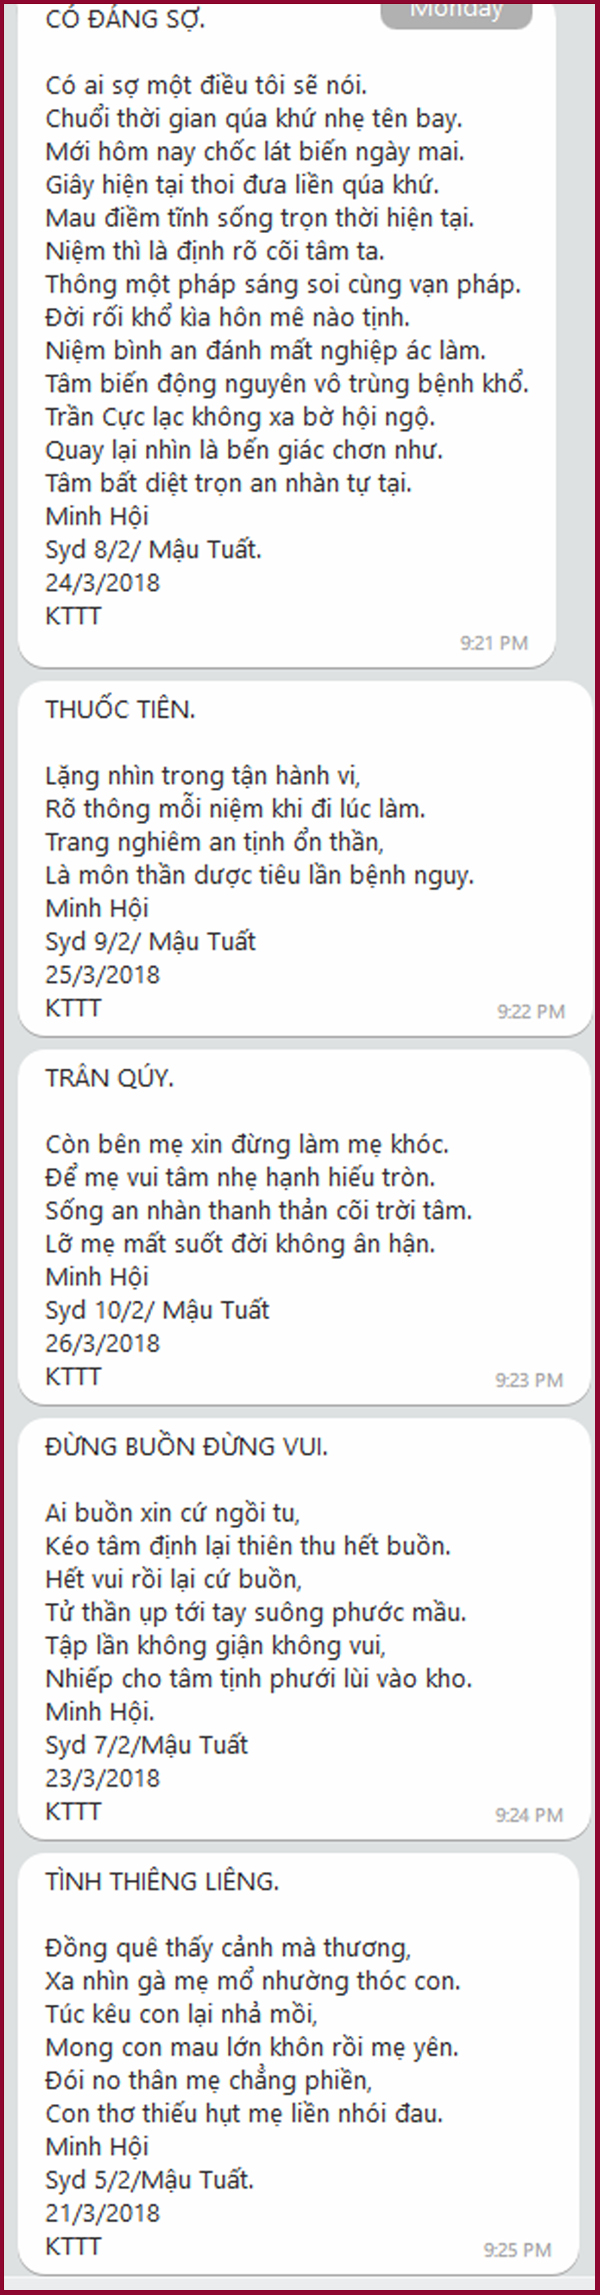 co dang so_thich minh hoi